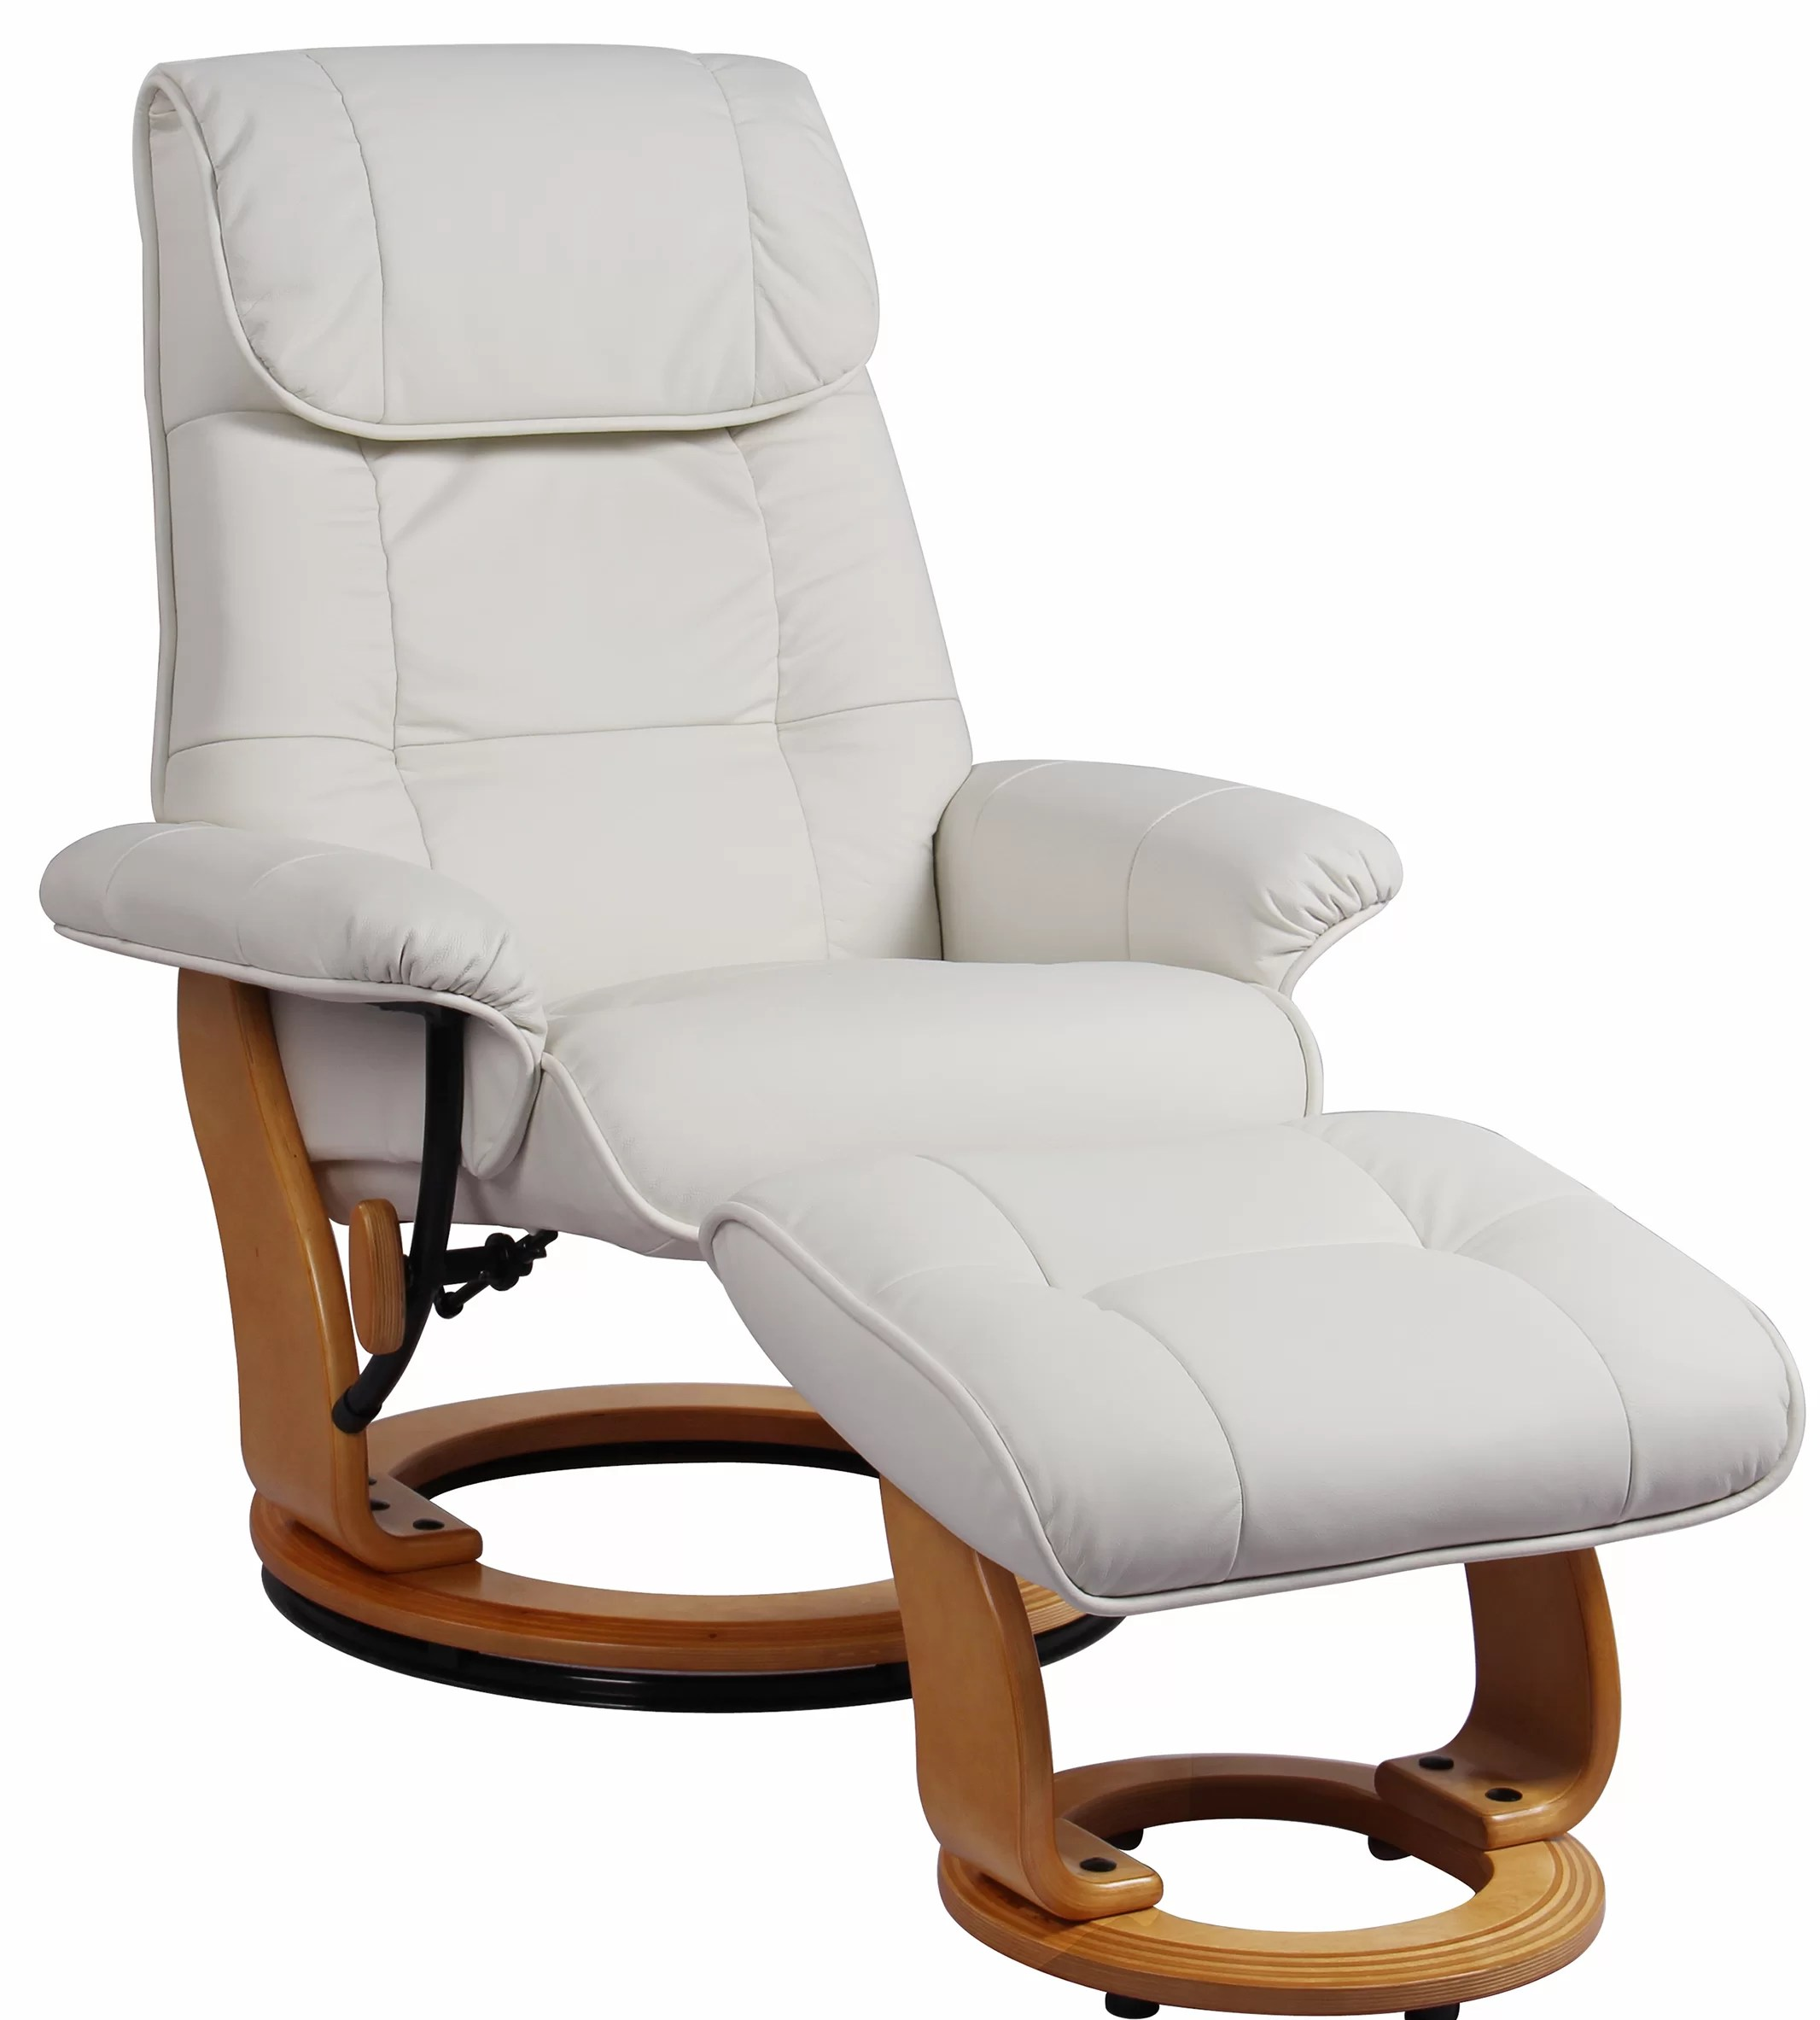 beaucet manual swivel recliner with ottoman